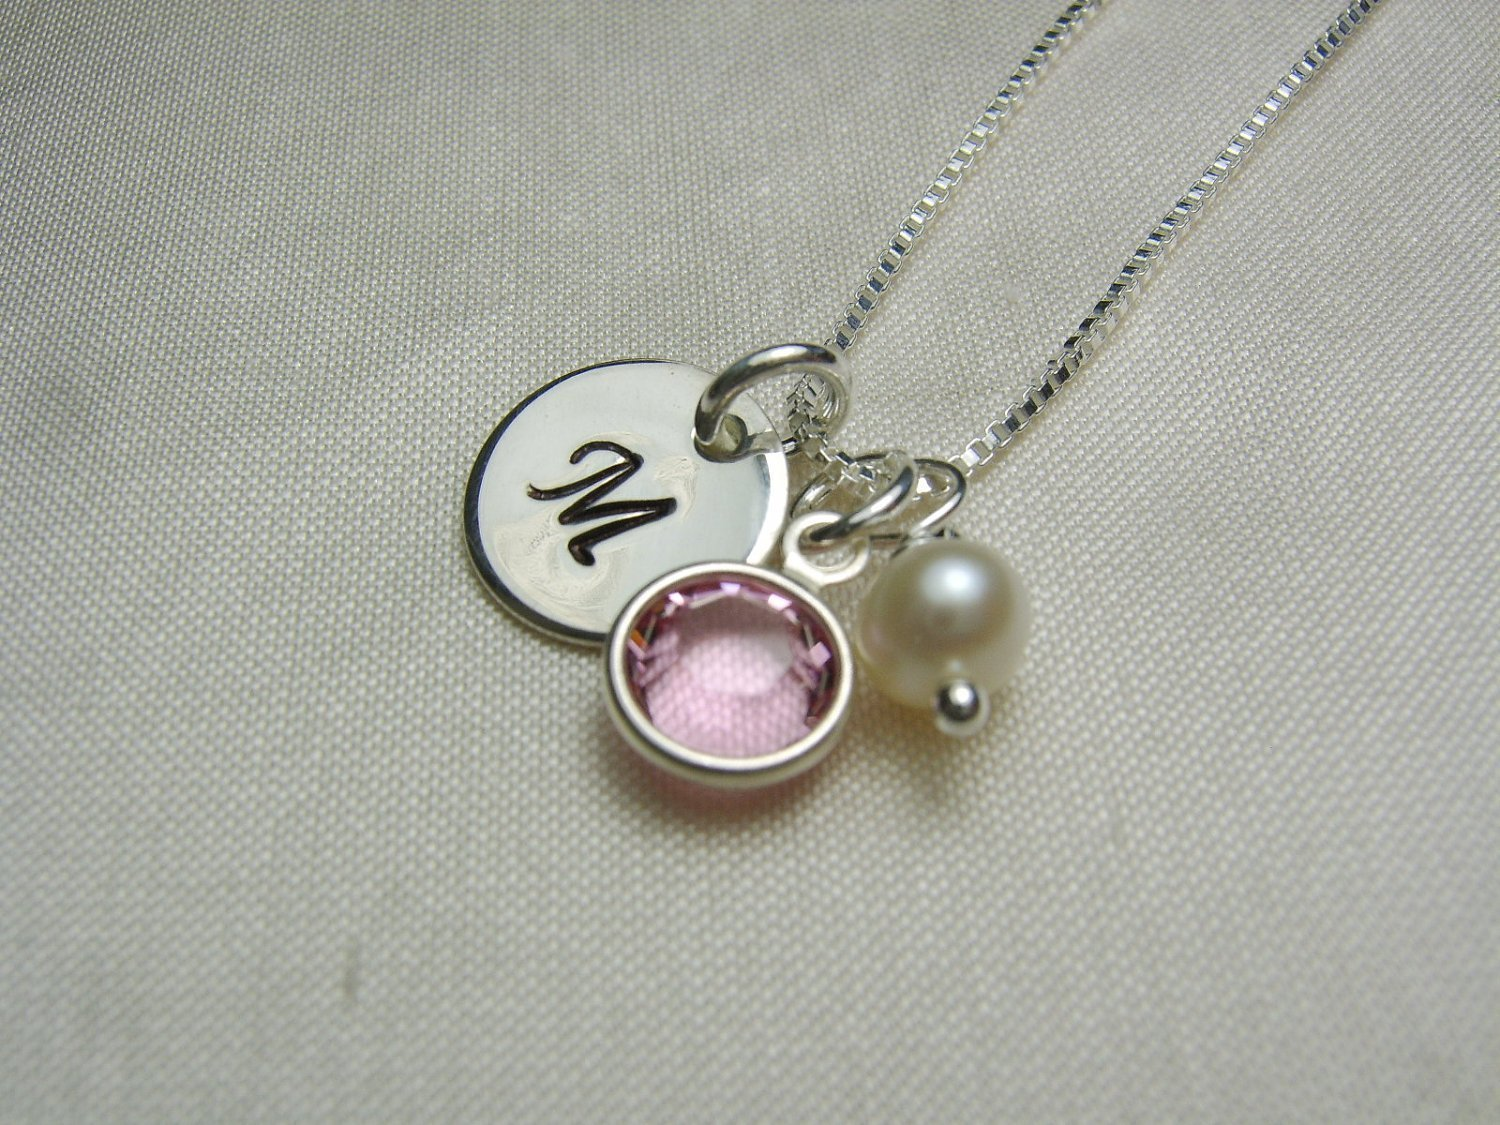 Necklace for new mom